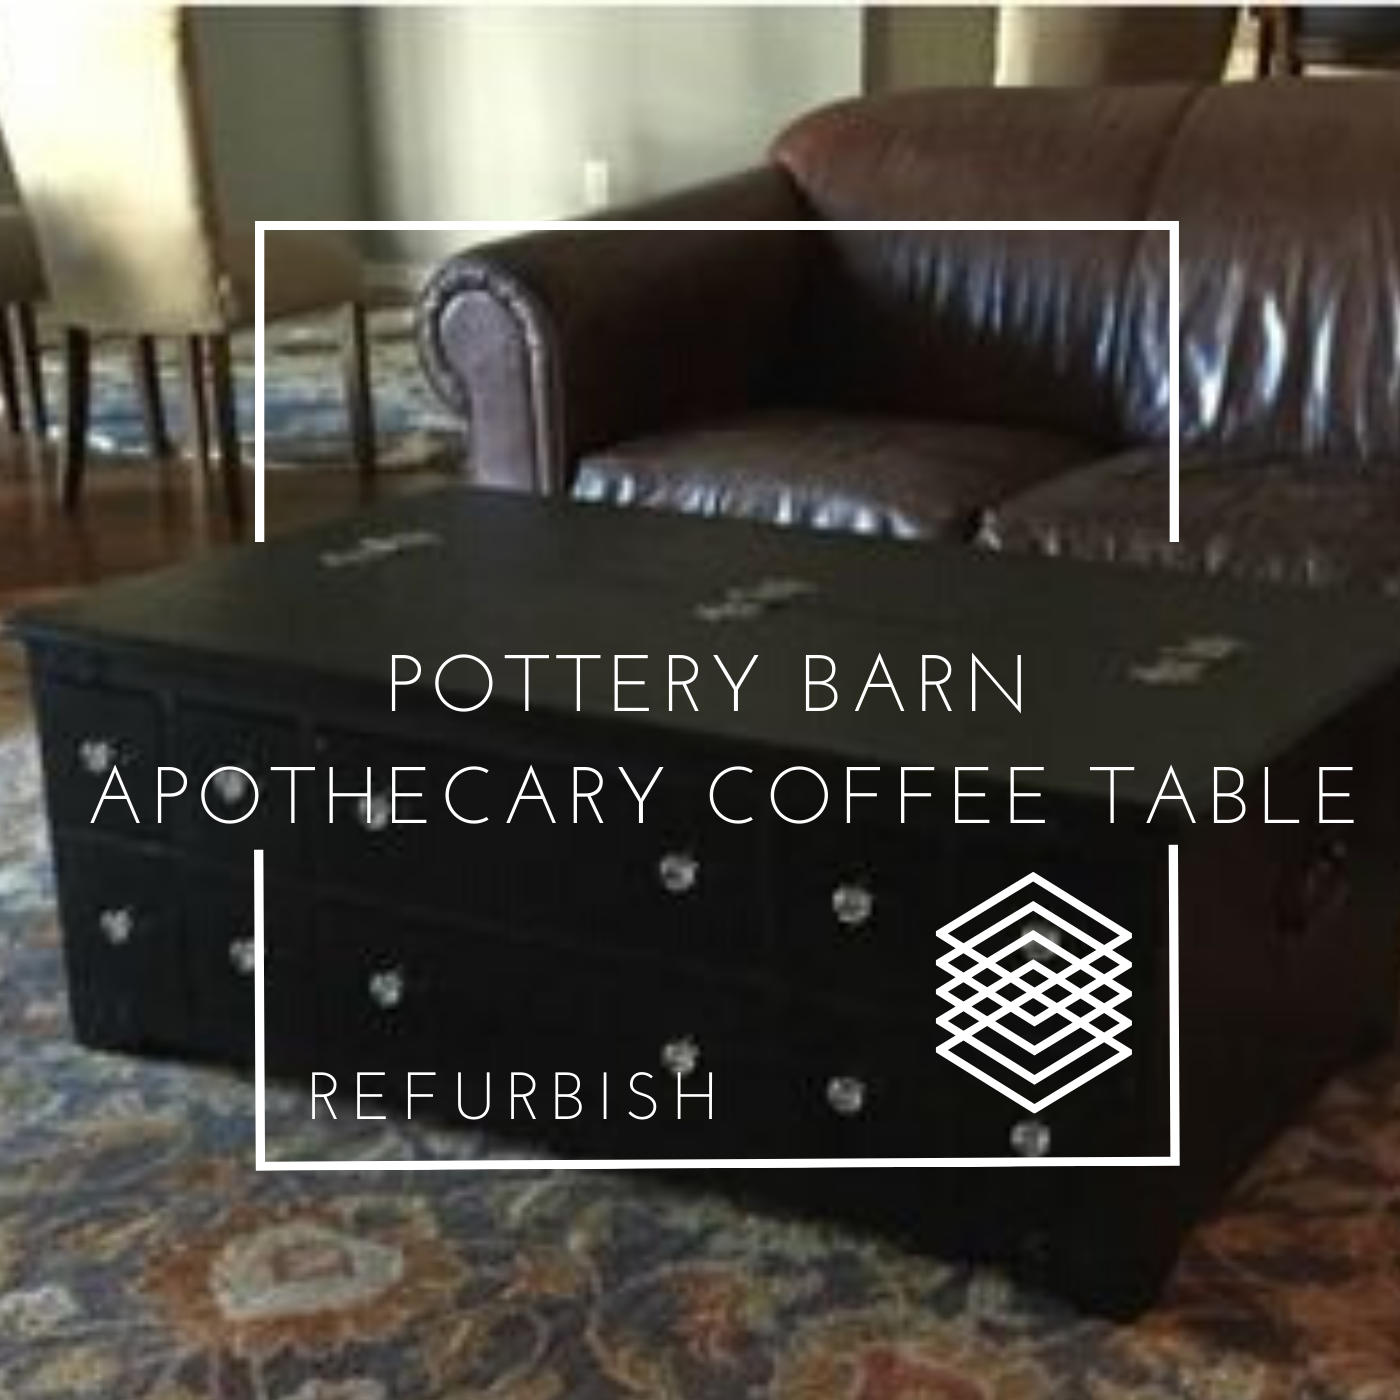 Pottery Barn Apothecary Coffee Table Coffee Table Apothecary Pottery Barn